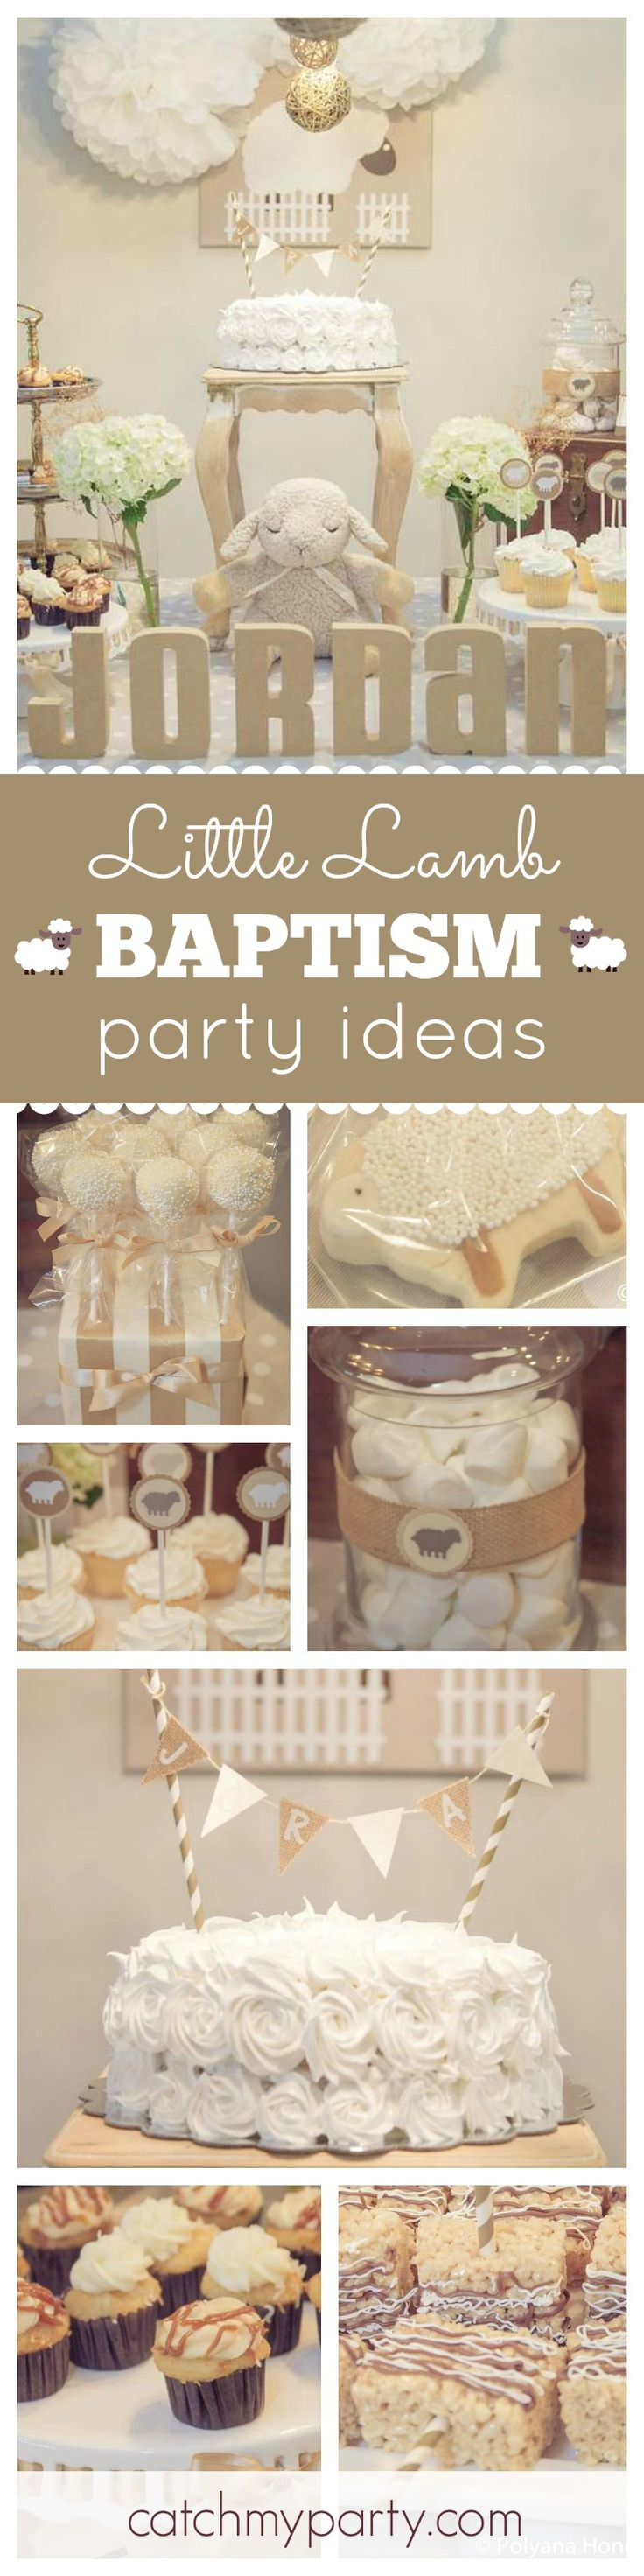 Checa esta adorable idea para la celebración de bautizo!  The lamb cookies are too cute! See more party ideas at CatchMyParty.com